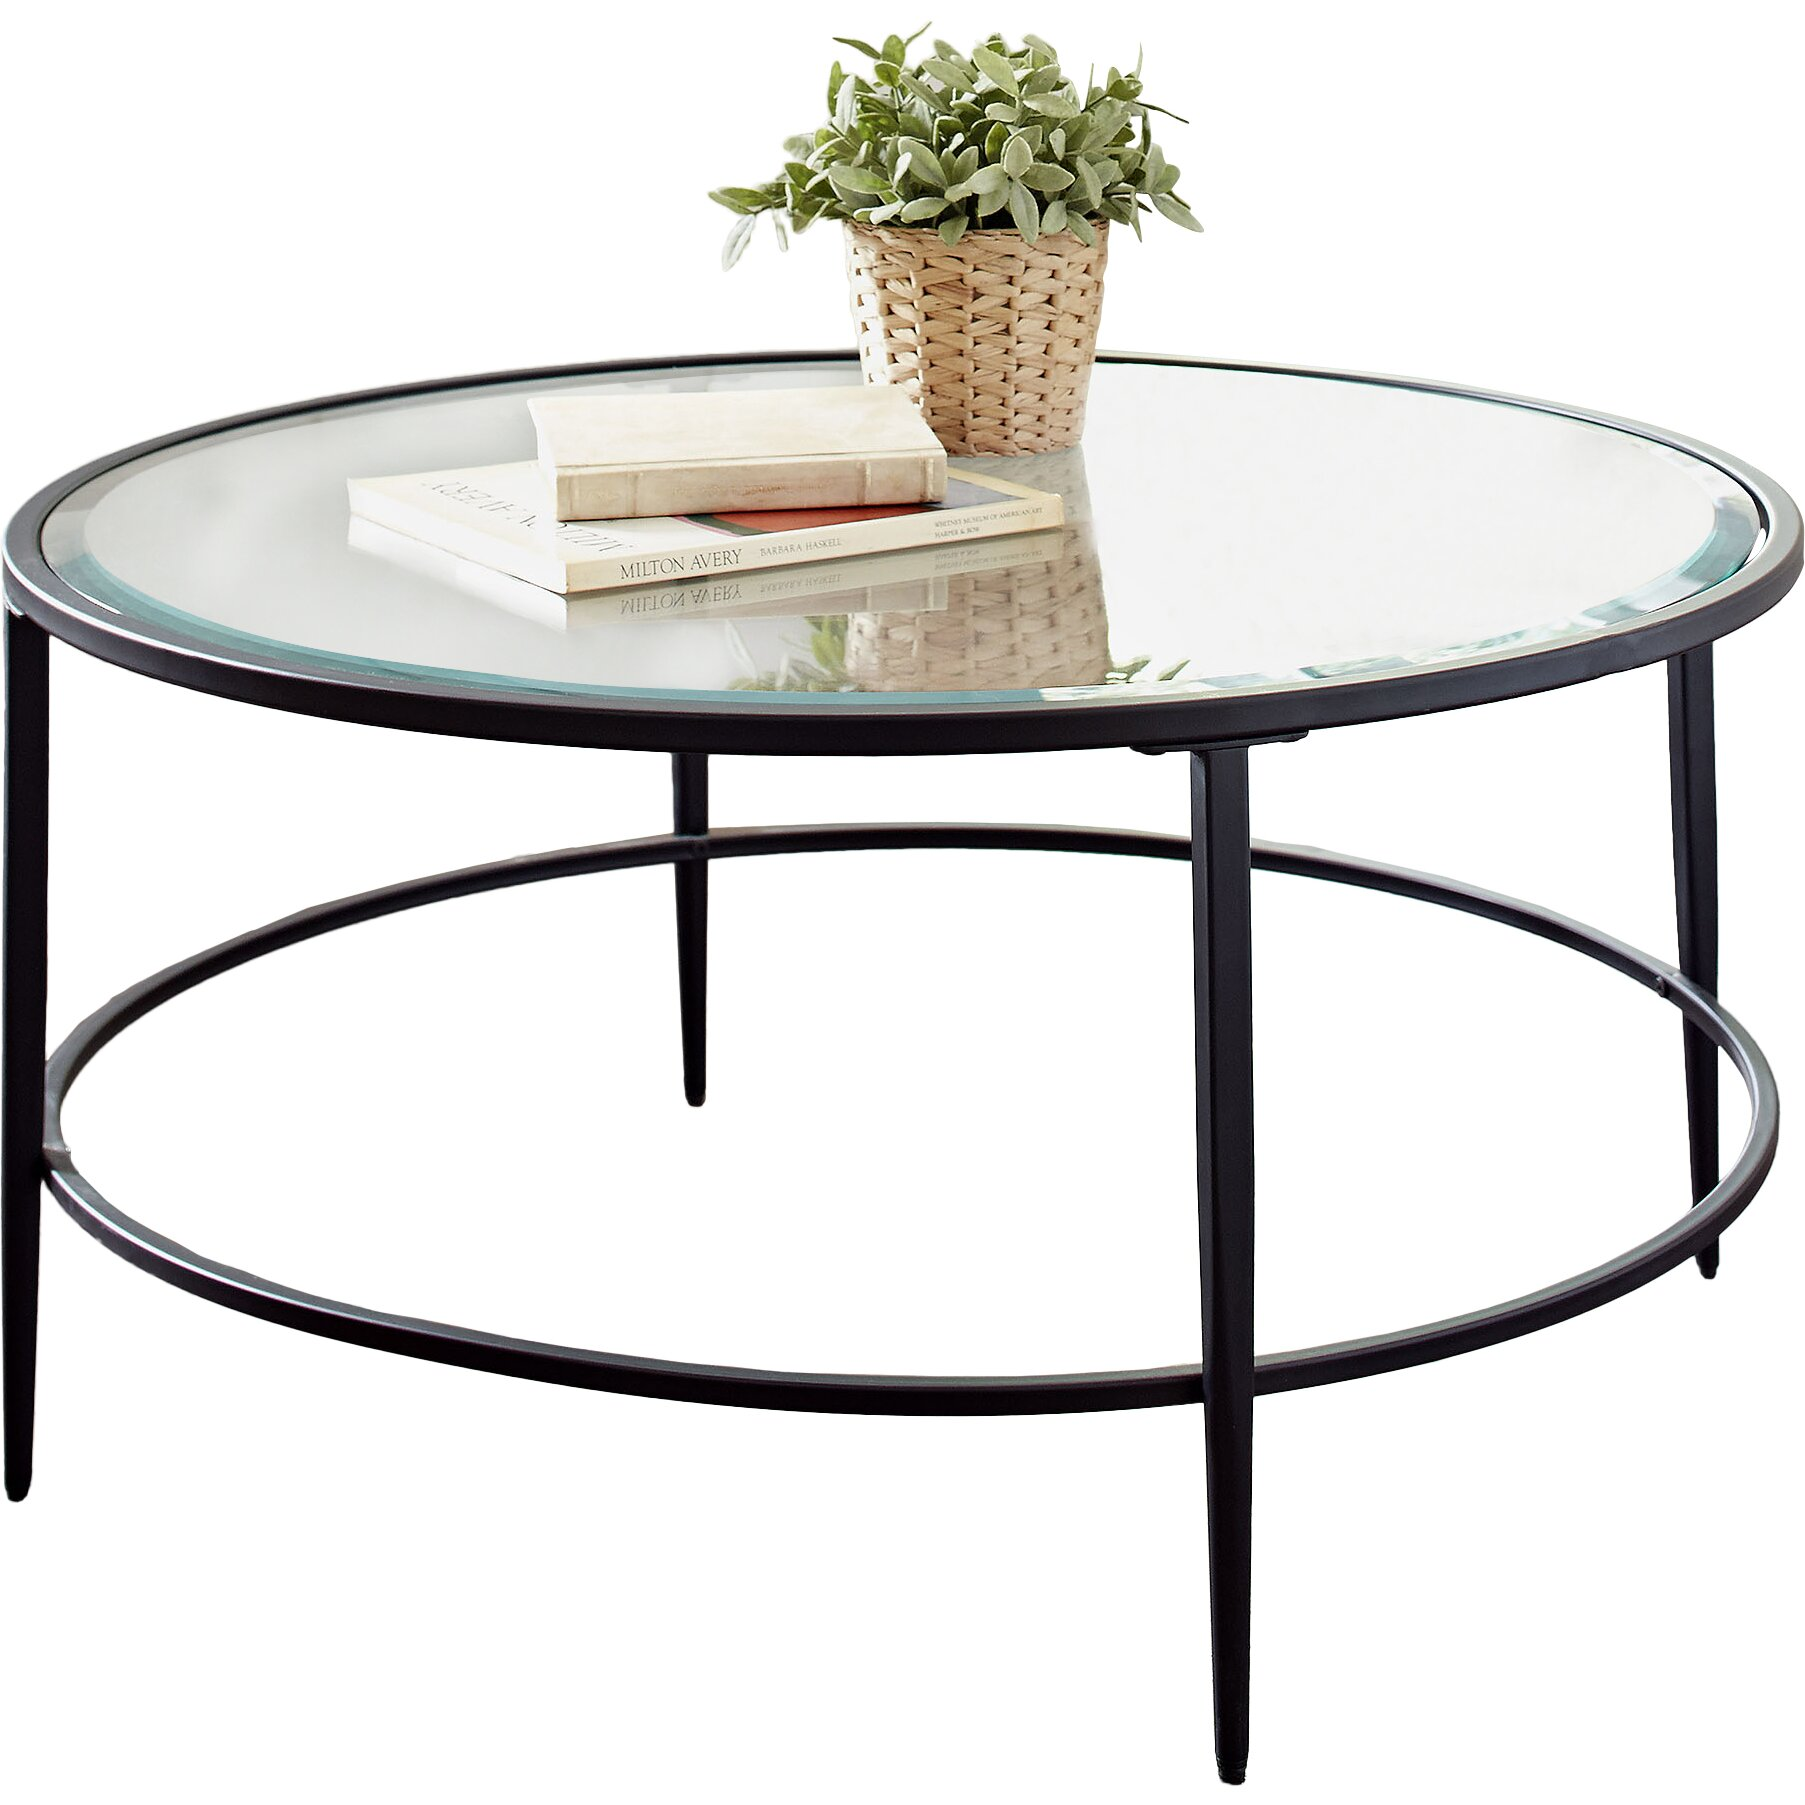 Harlan round coffee table reviews birch lane for Round table 85 ortenau